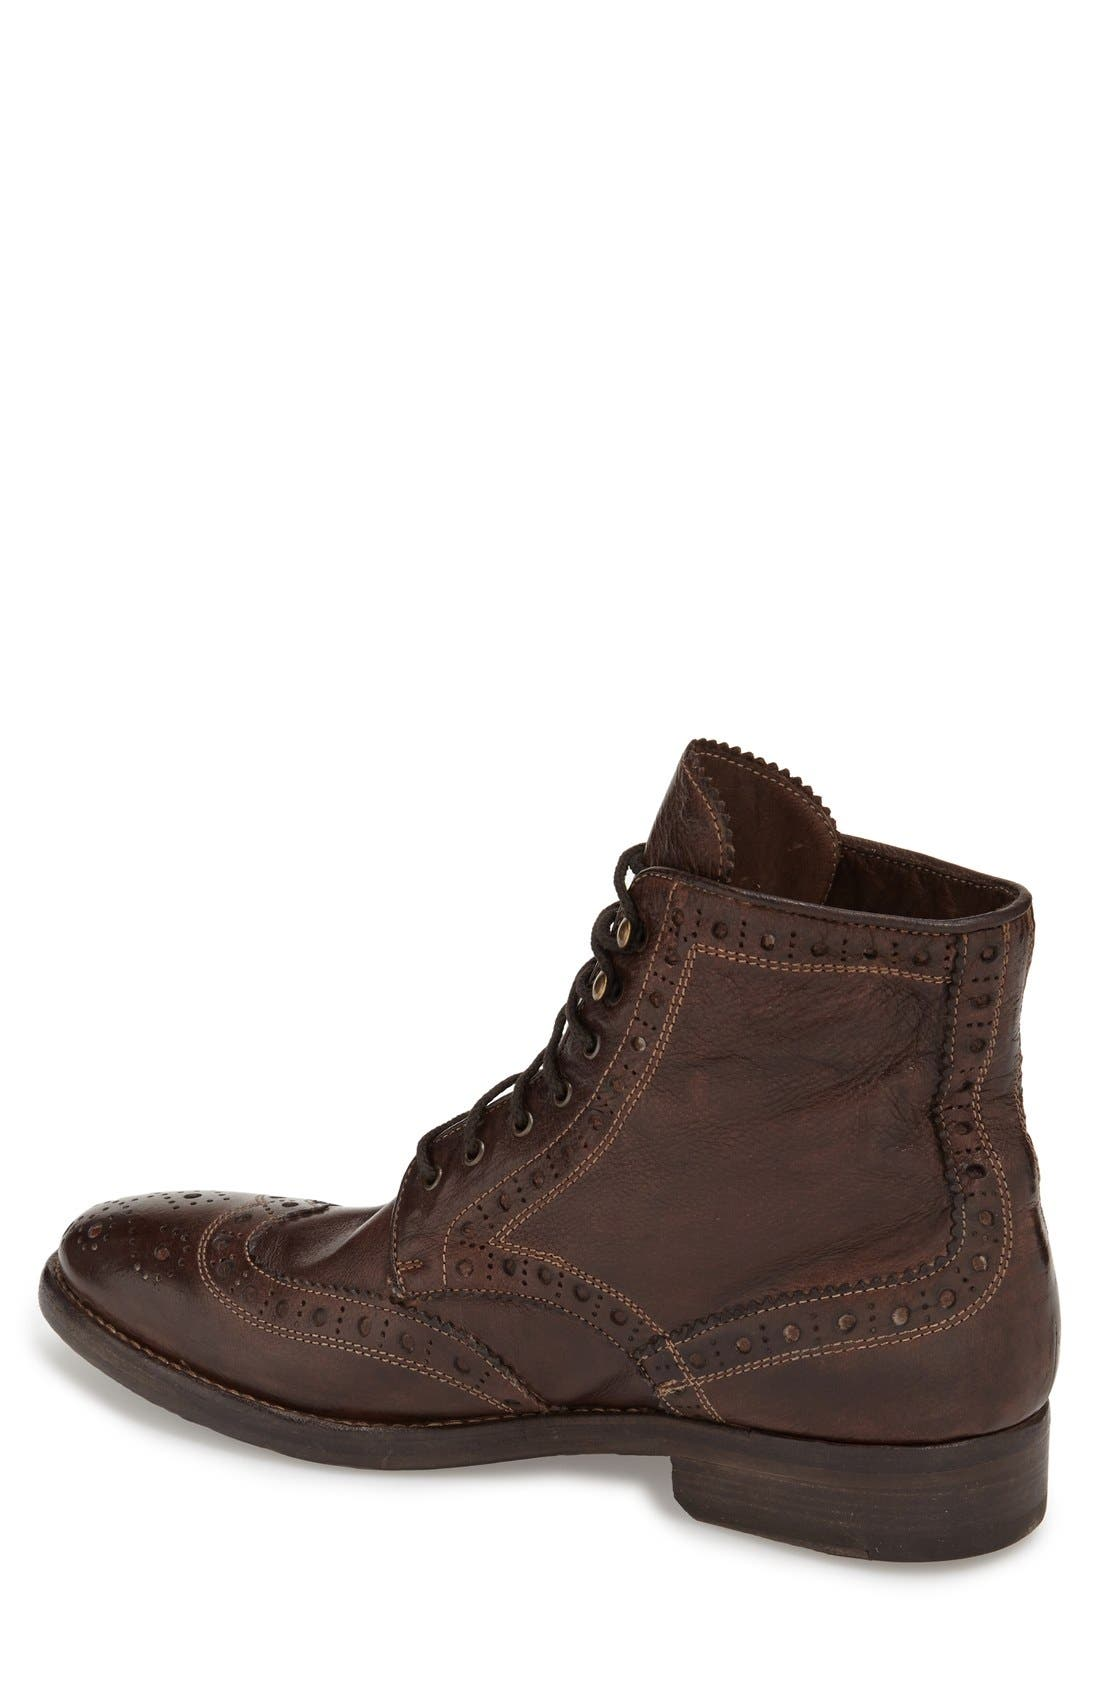 'Brennan' Boot,                             Alternate thumbnail 2, color,                             Chocolate Leather